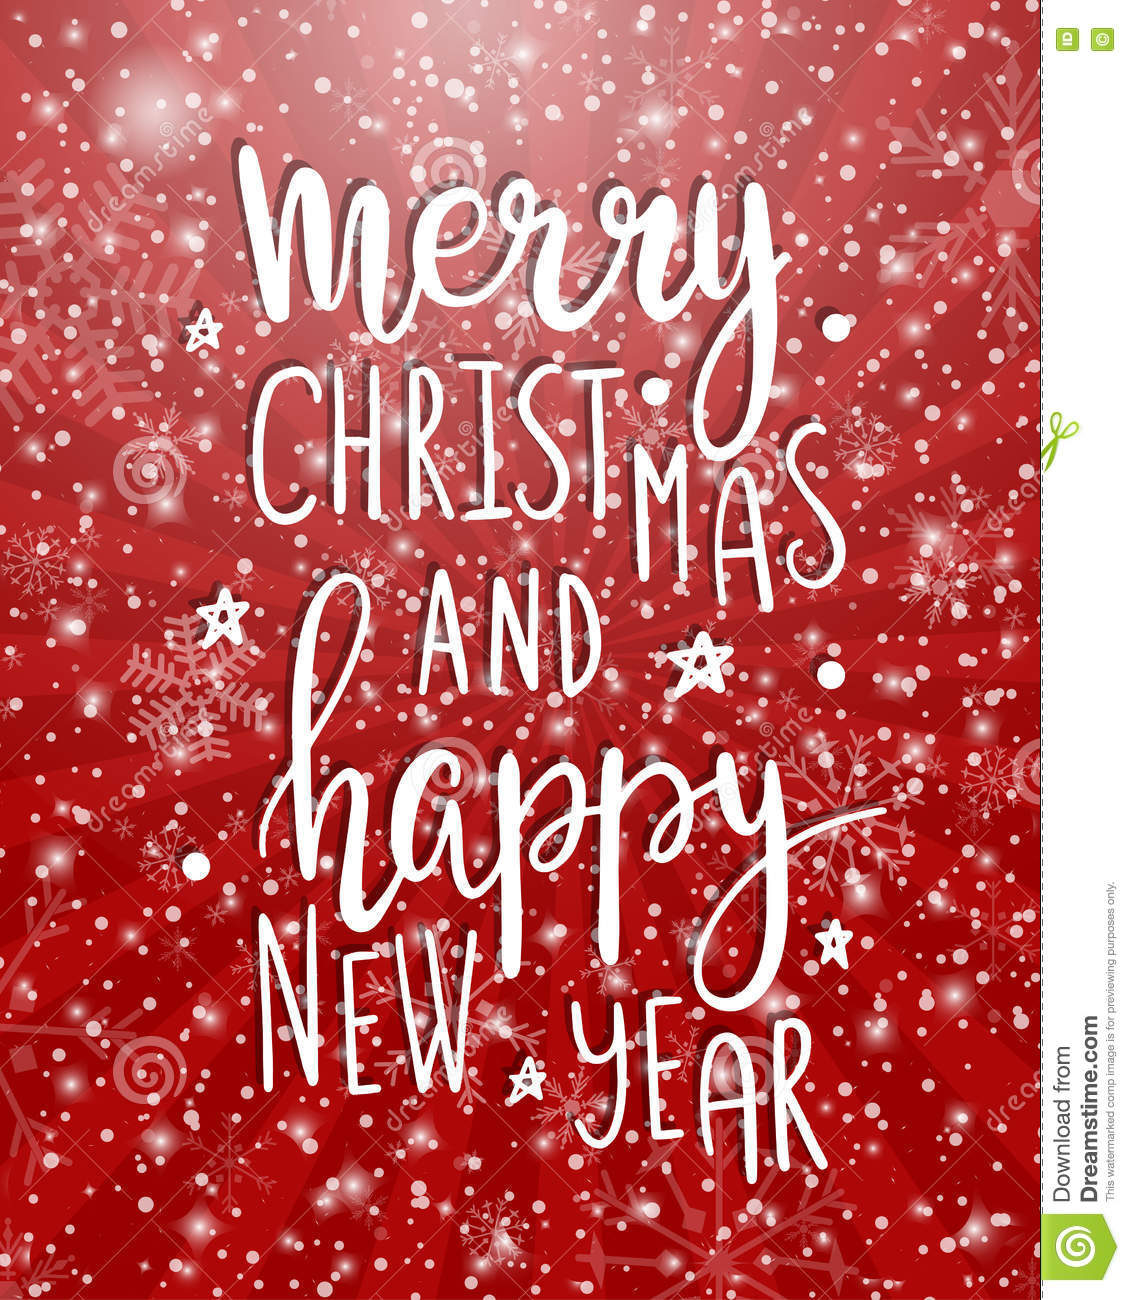 merry christmas and happy new year lettering quote - Merry Christmas And Happy New Year Quotes